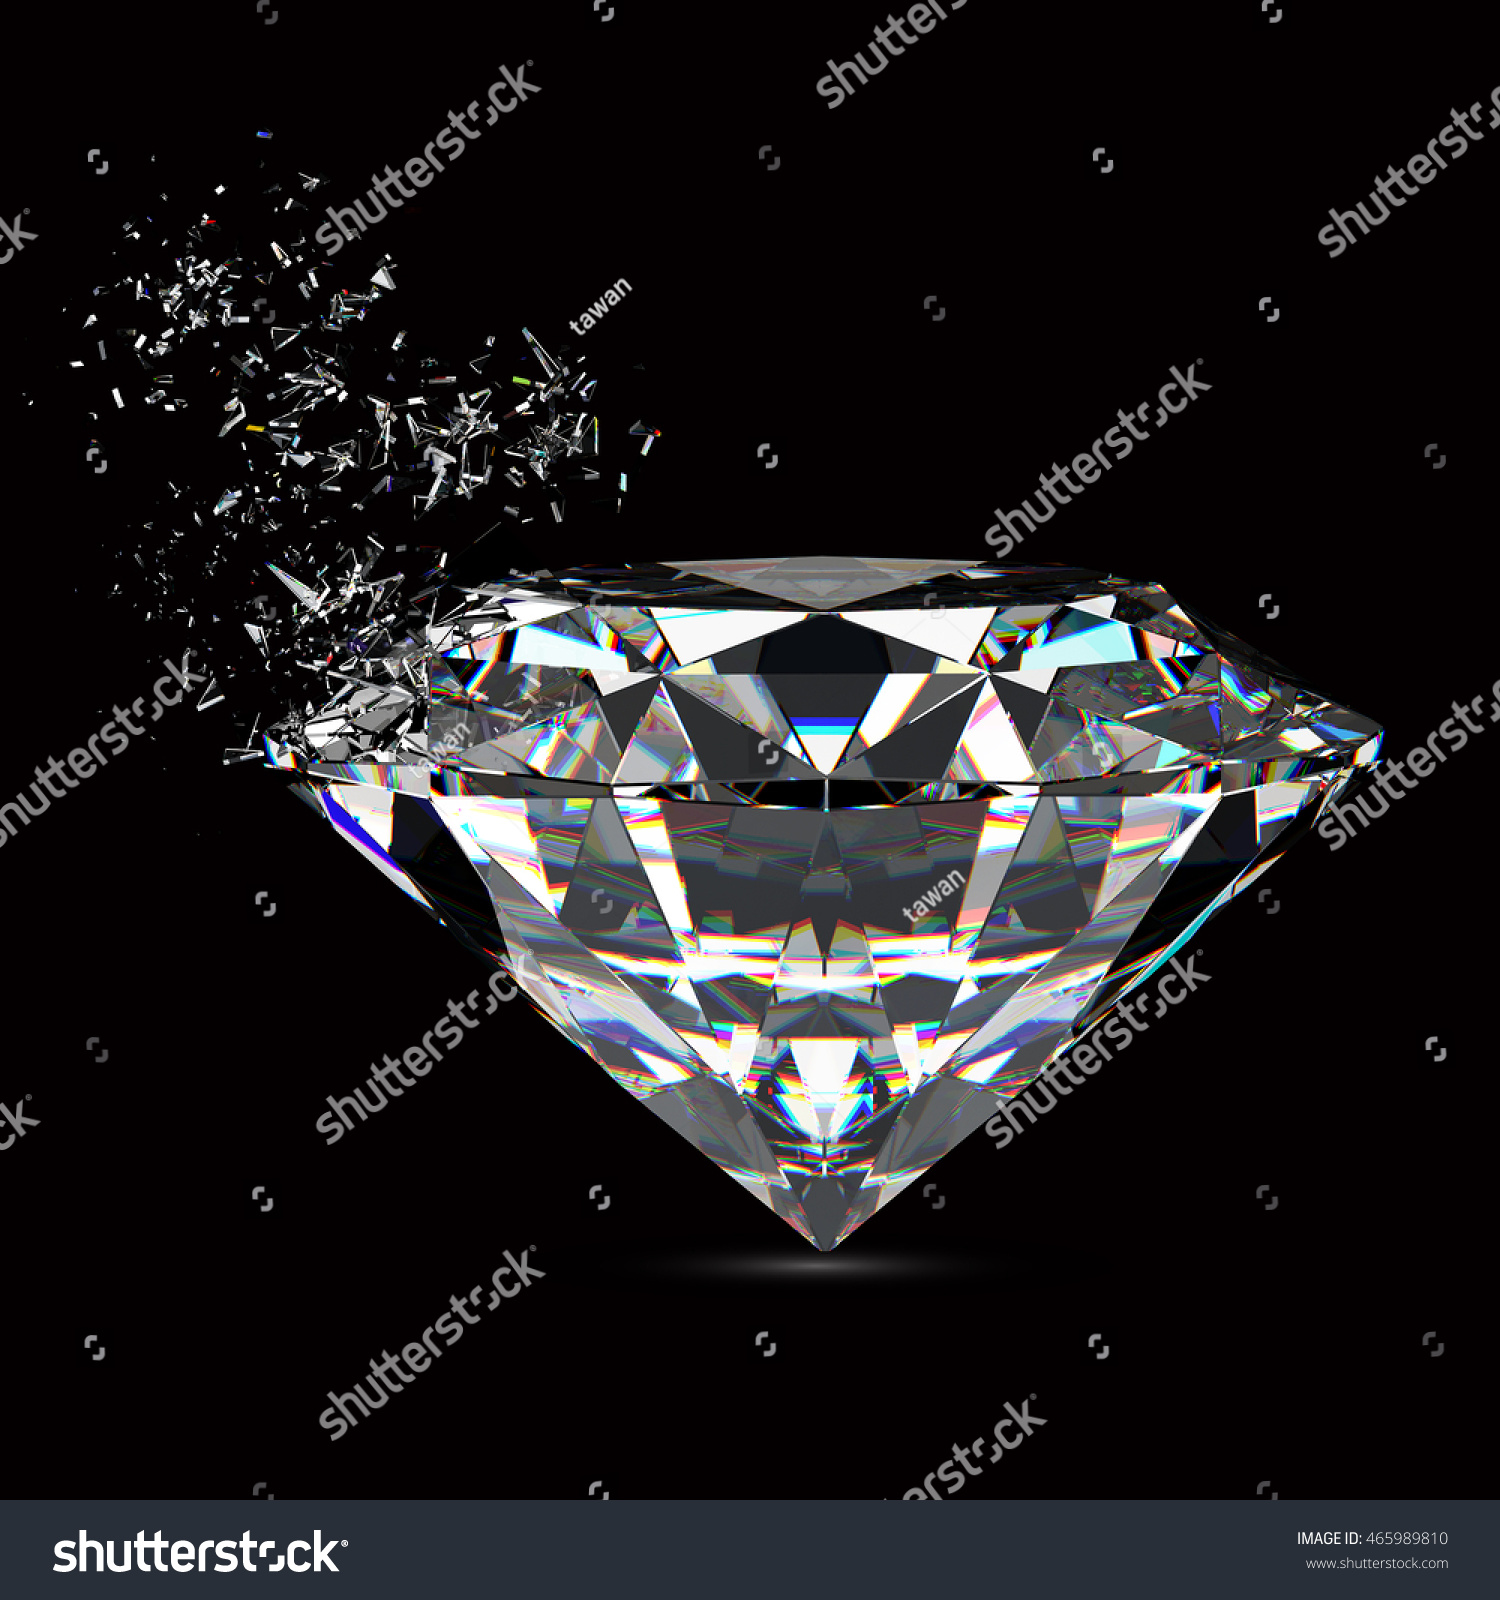 anastasyastocks illustration icon depositphotos ring sparkle diamond stock vector